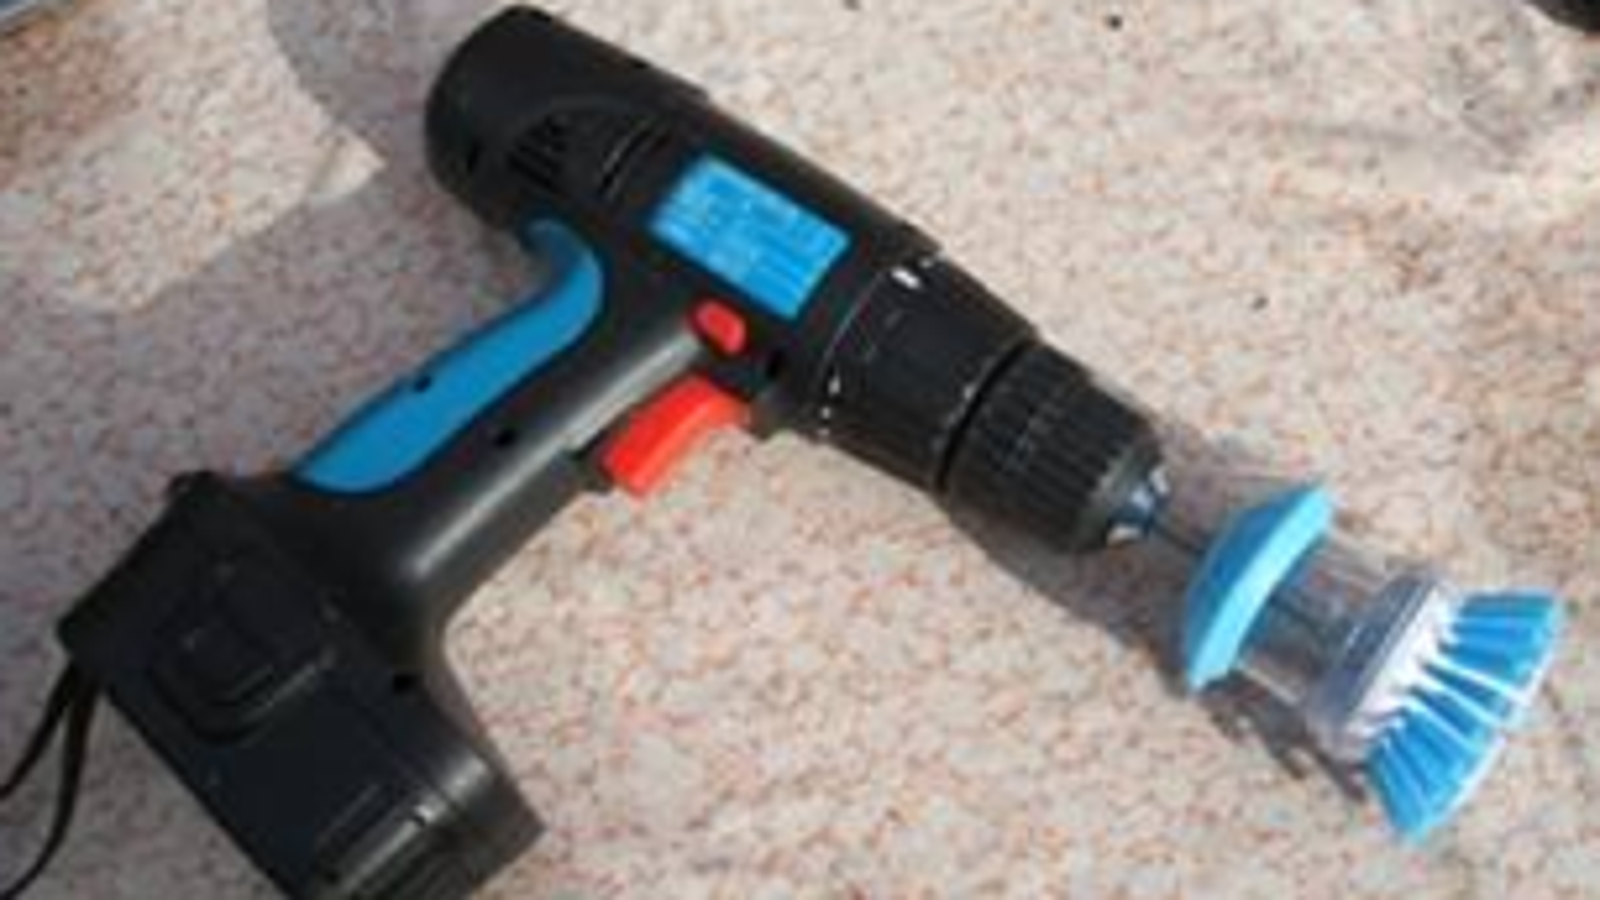 the power drill brush means serious cleaning